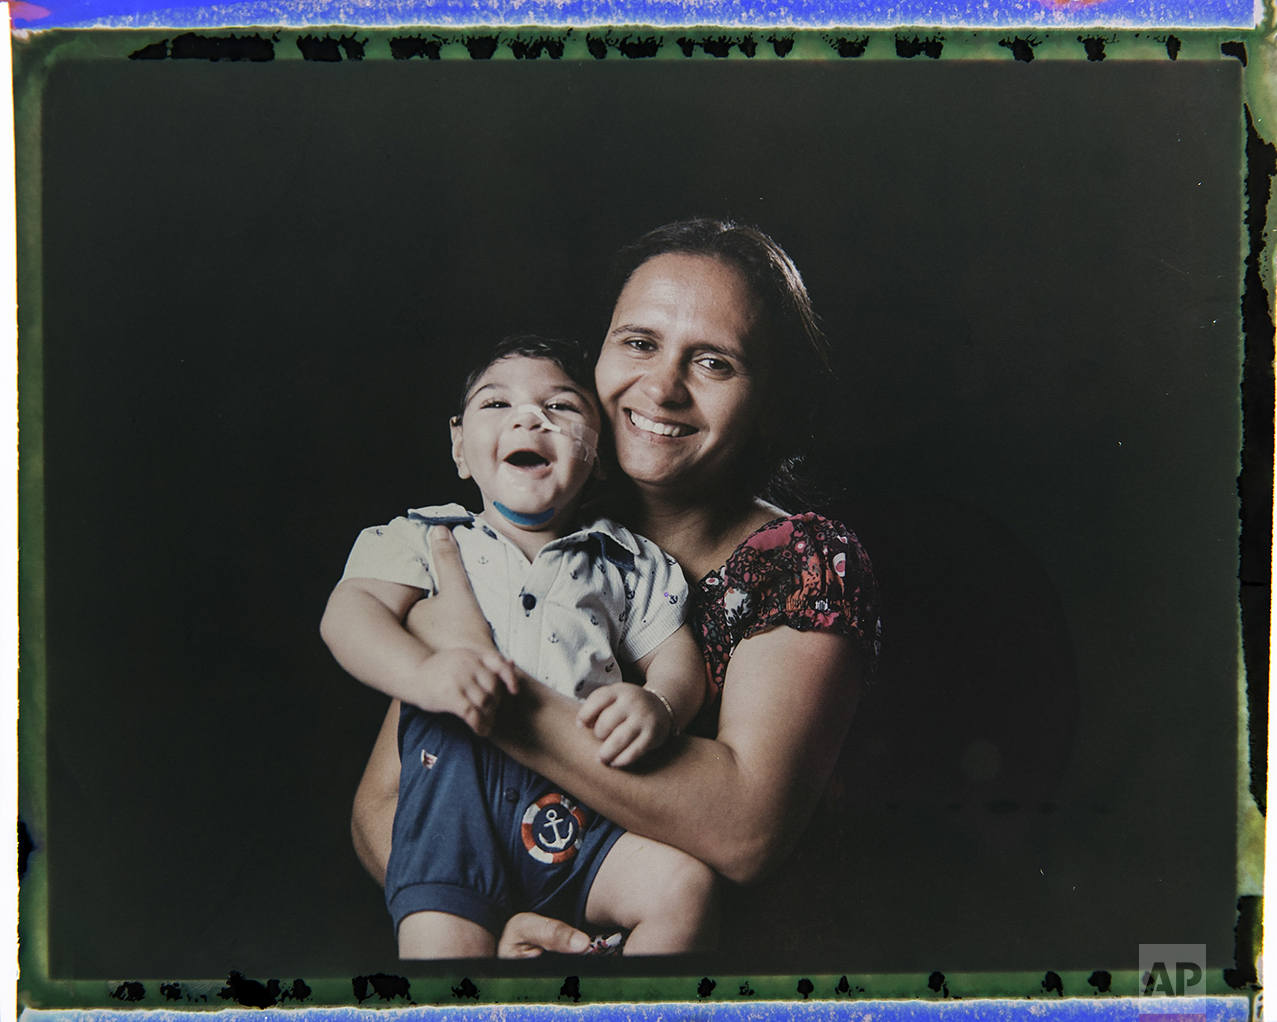 In this Sept. 29, 2016 photo made from a negative recovered from instant film, Rozilene Ferreira poses with her 1-year-old son, Arthur Conceicao, who was born with microcephaly, one of many serious medical problems that can be caused by congenital Zika syndrome, in Recife, Pernambuco state, Brazil. A year after a spike in the number of newborns with the defect known as microcephaly, Brazilian doctors and researchers have seen many of the babies develop swallowing difficulties, epileptic seizures and vision and hearing problems. (AP Photo/Felipe Dana)